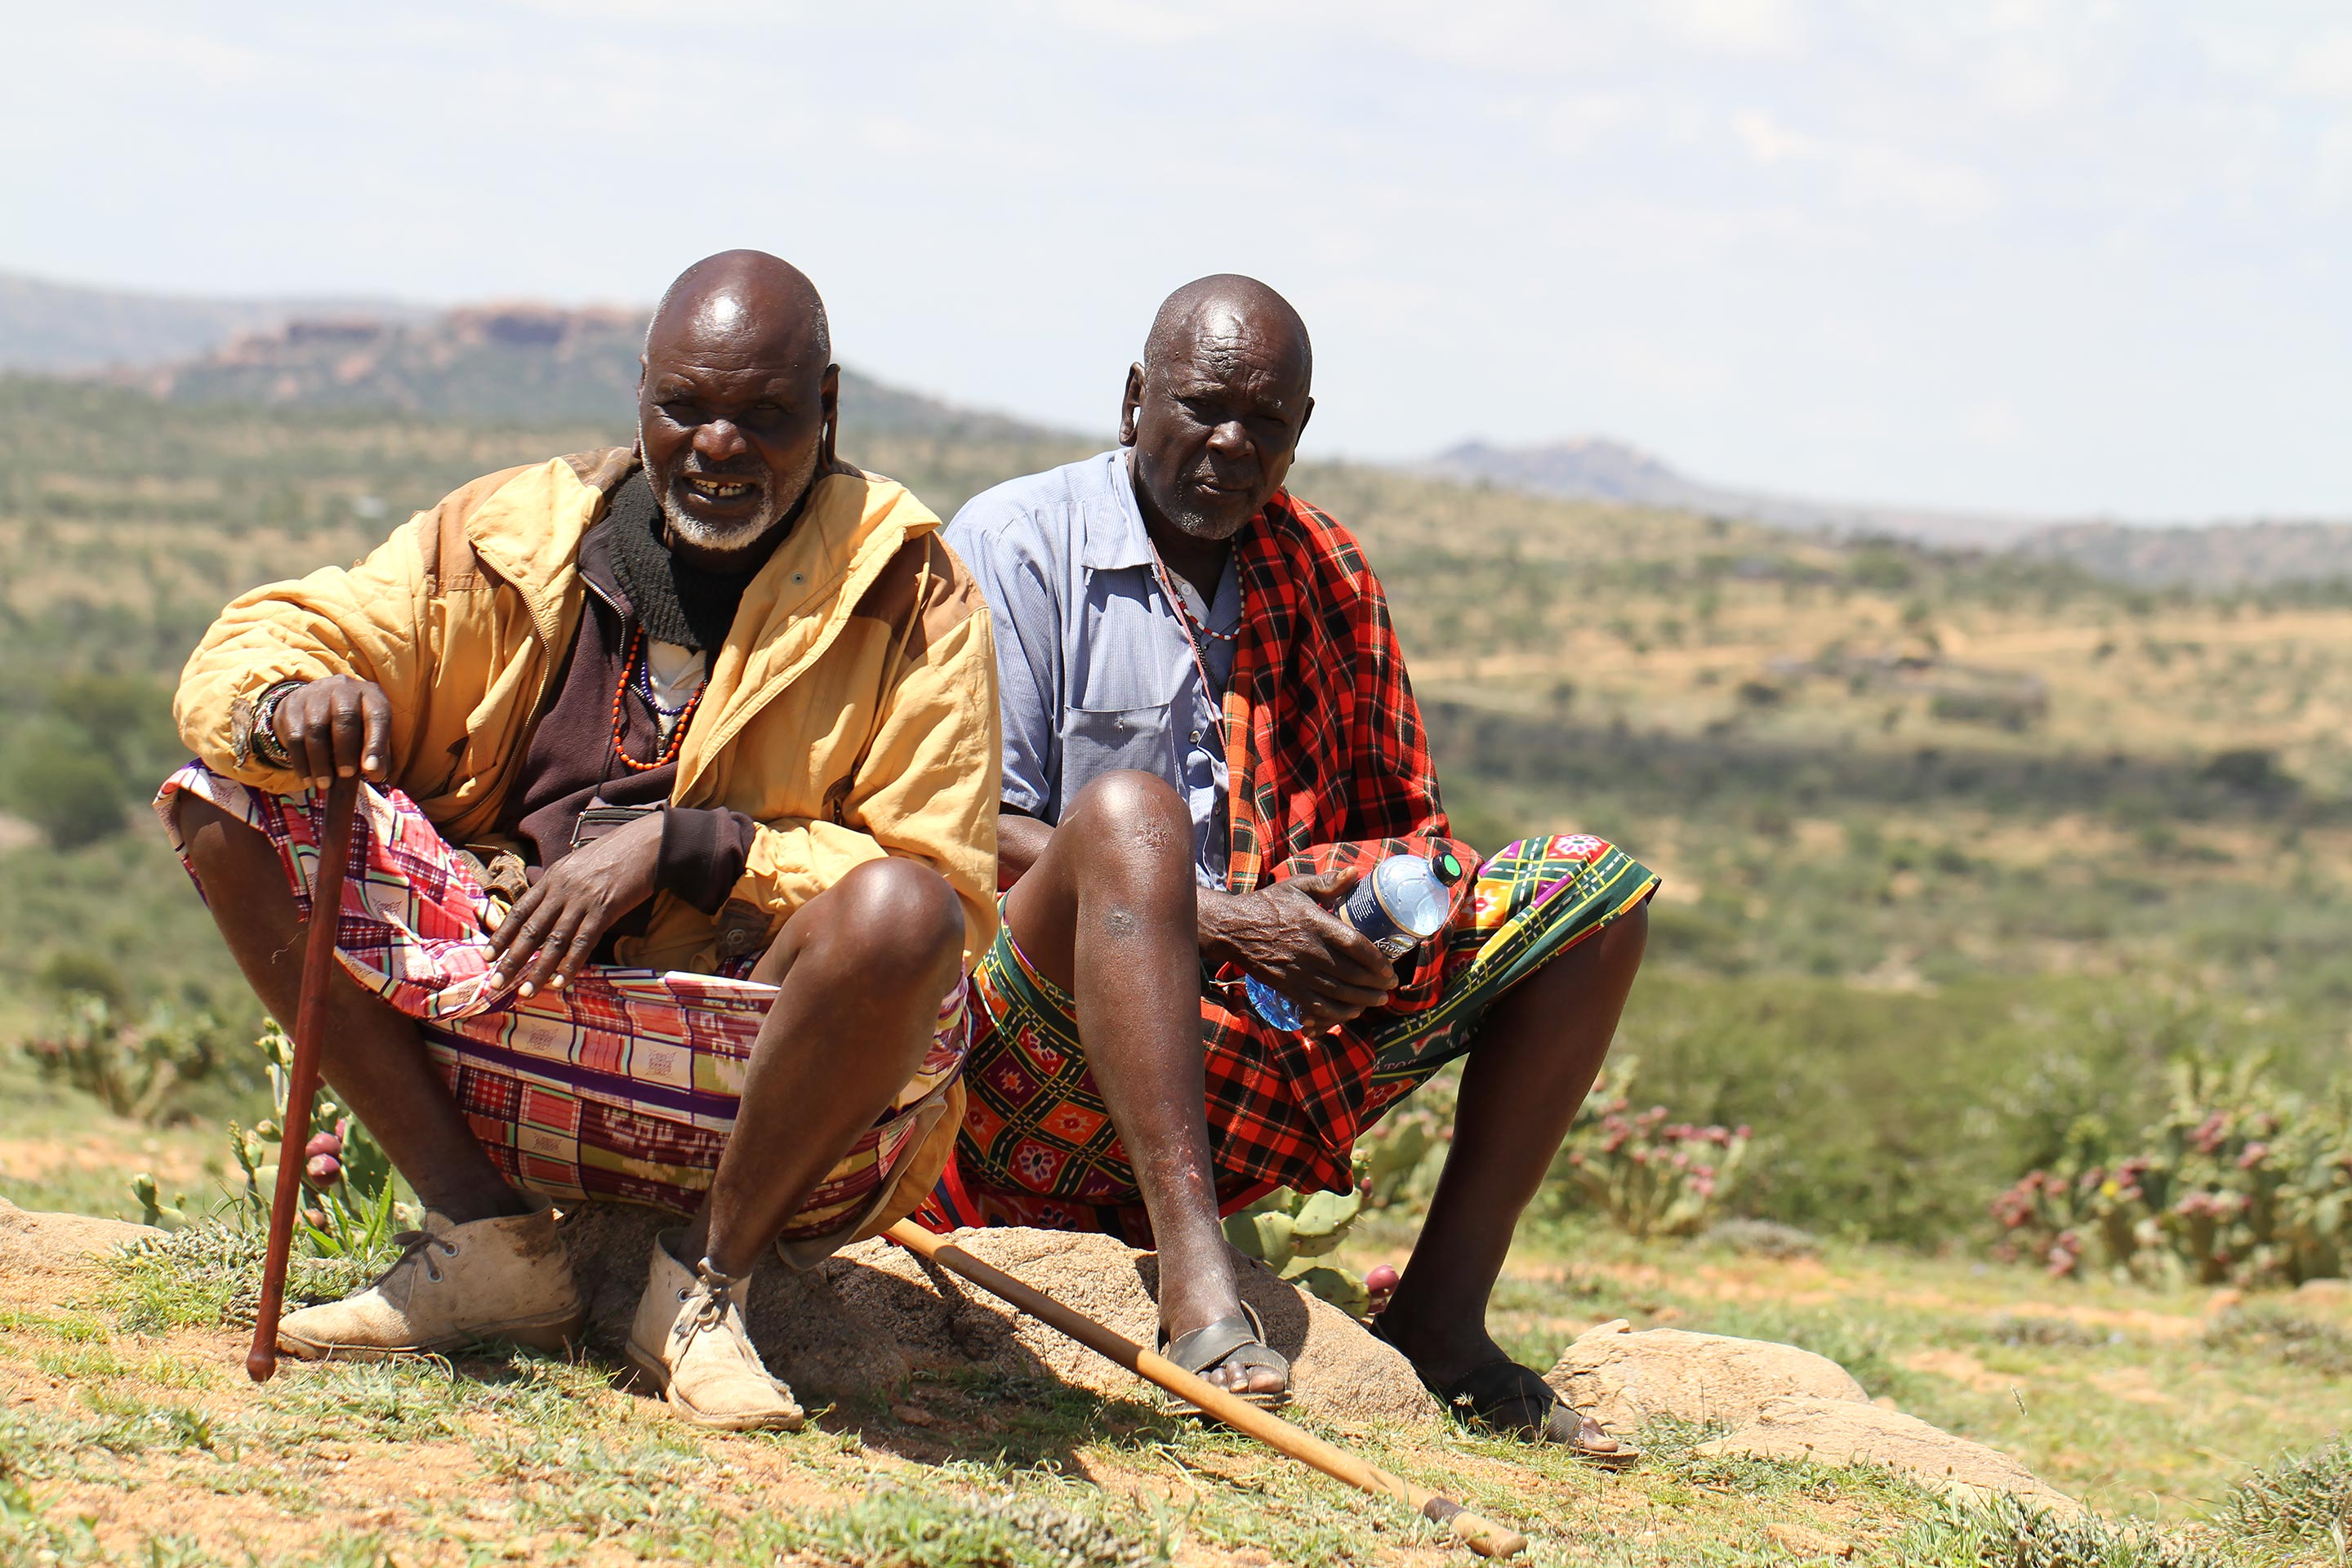 Two pastoralists sitting on a rock in northern Kenya